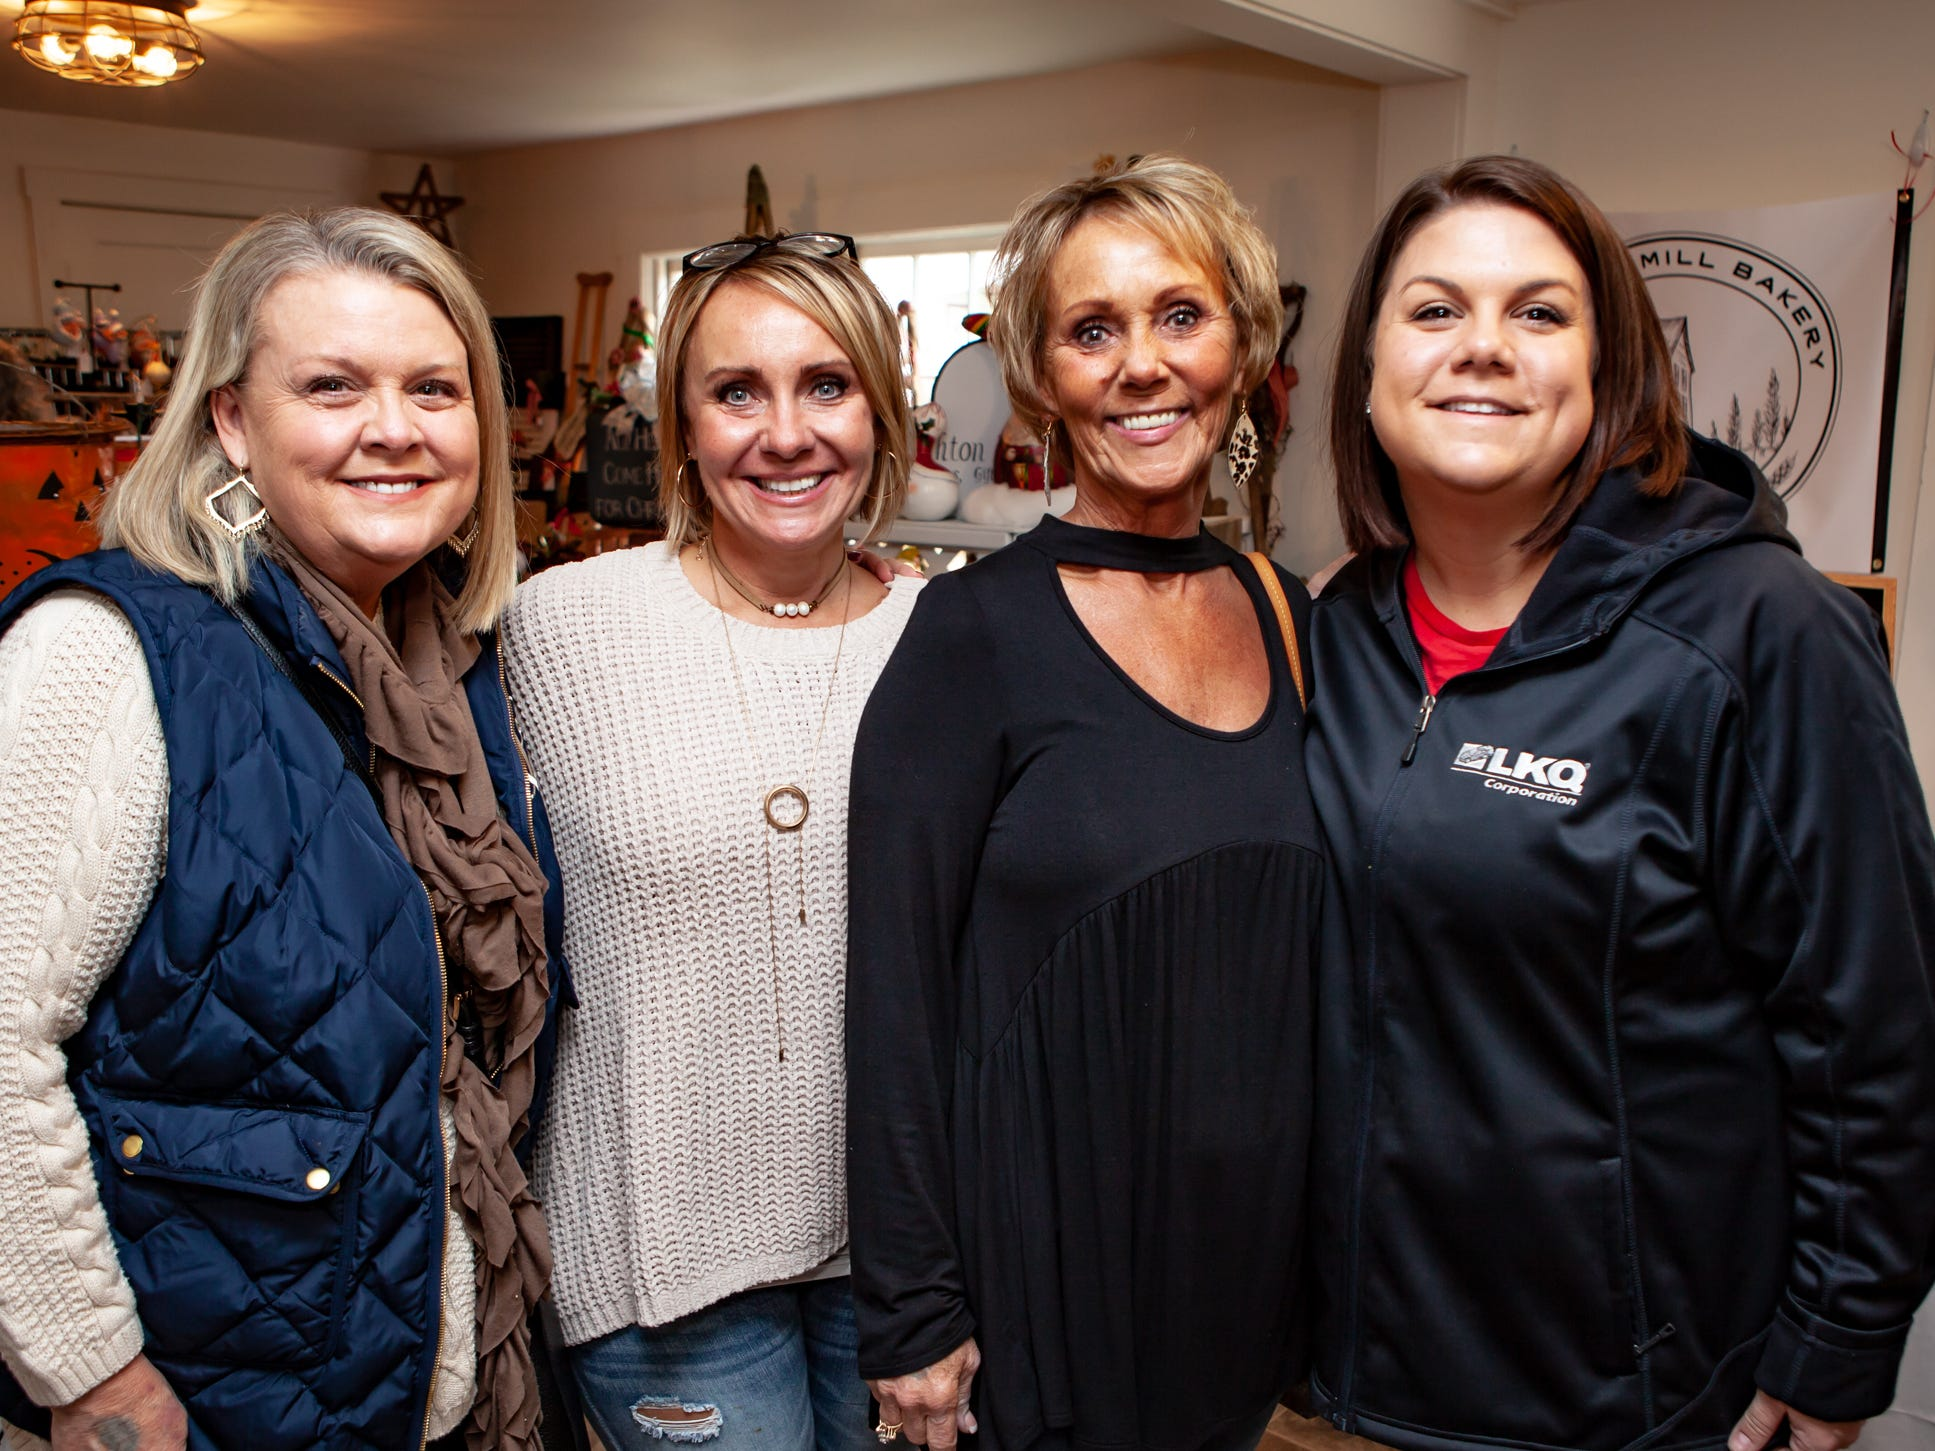 Paula Laaser, Tammy Dement, Betty Hunter and Lindsey Sims at The Gathering at Milton's fall market and craft fair on Saturday, Oct. 13, 2018.